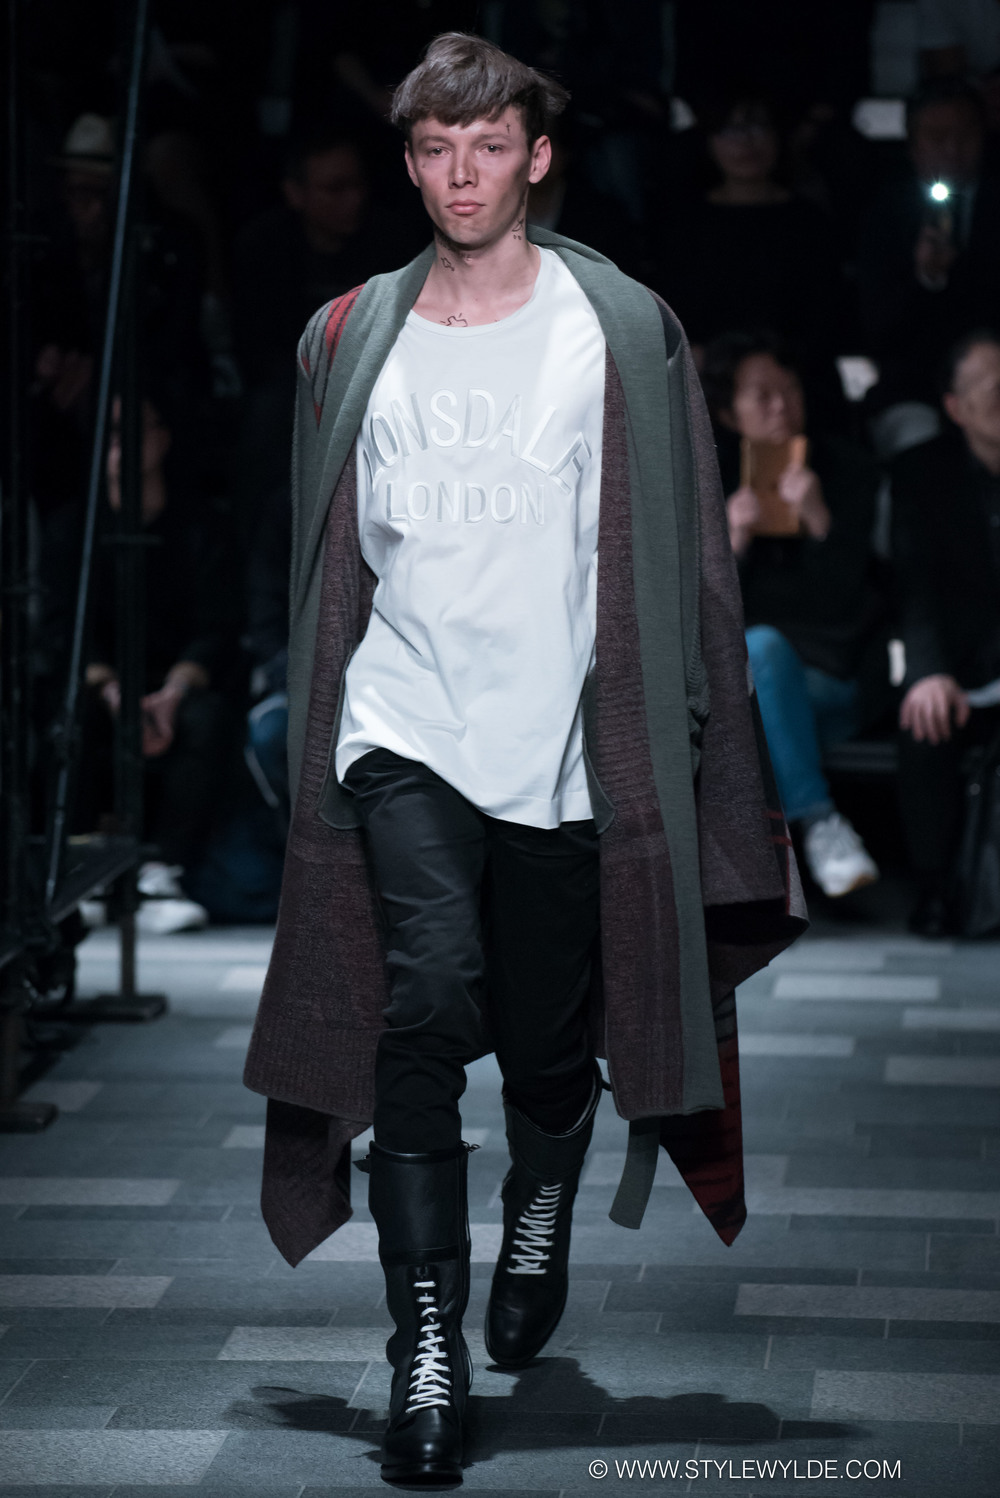 stylewylde_5351_pour_les_hommes_fw_2016-32.jpg